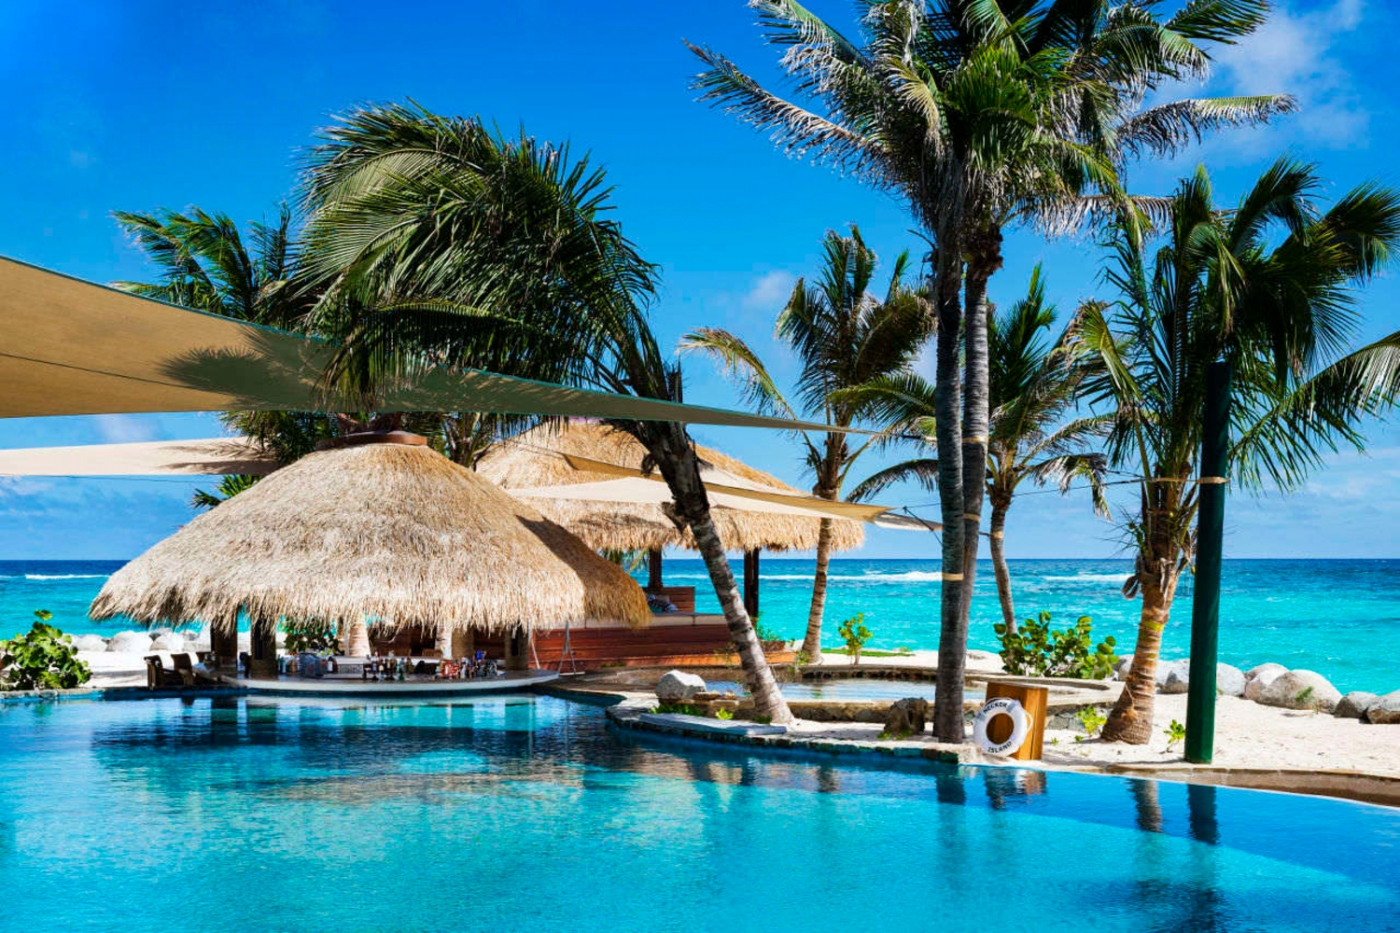 Luxury Destinations: Five Vacation Spots That Will Blow Your Mind feature image 43 1400x933